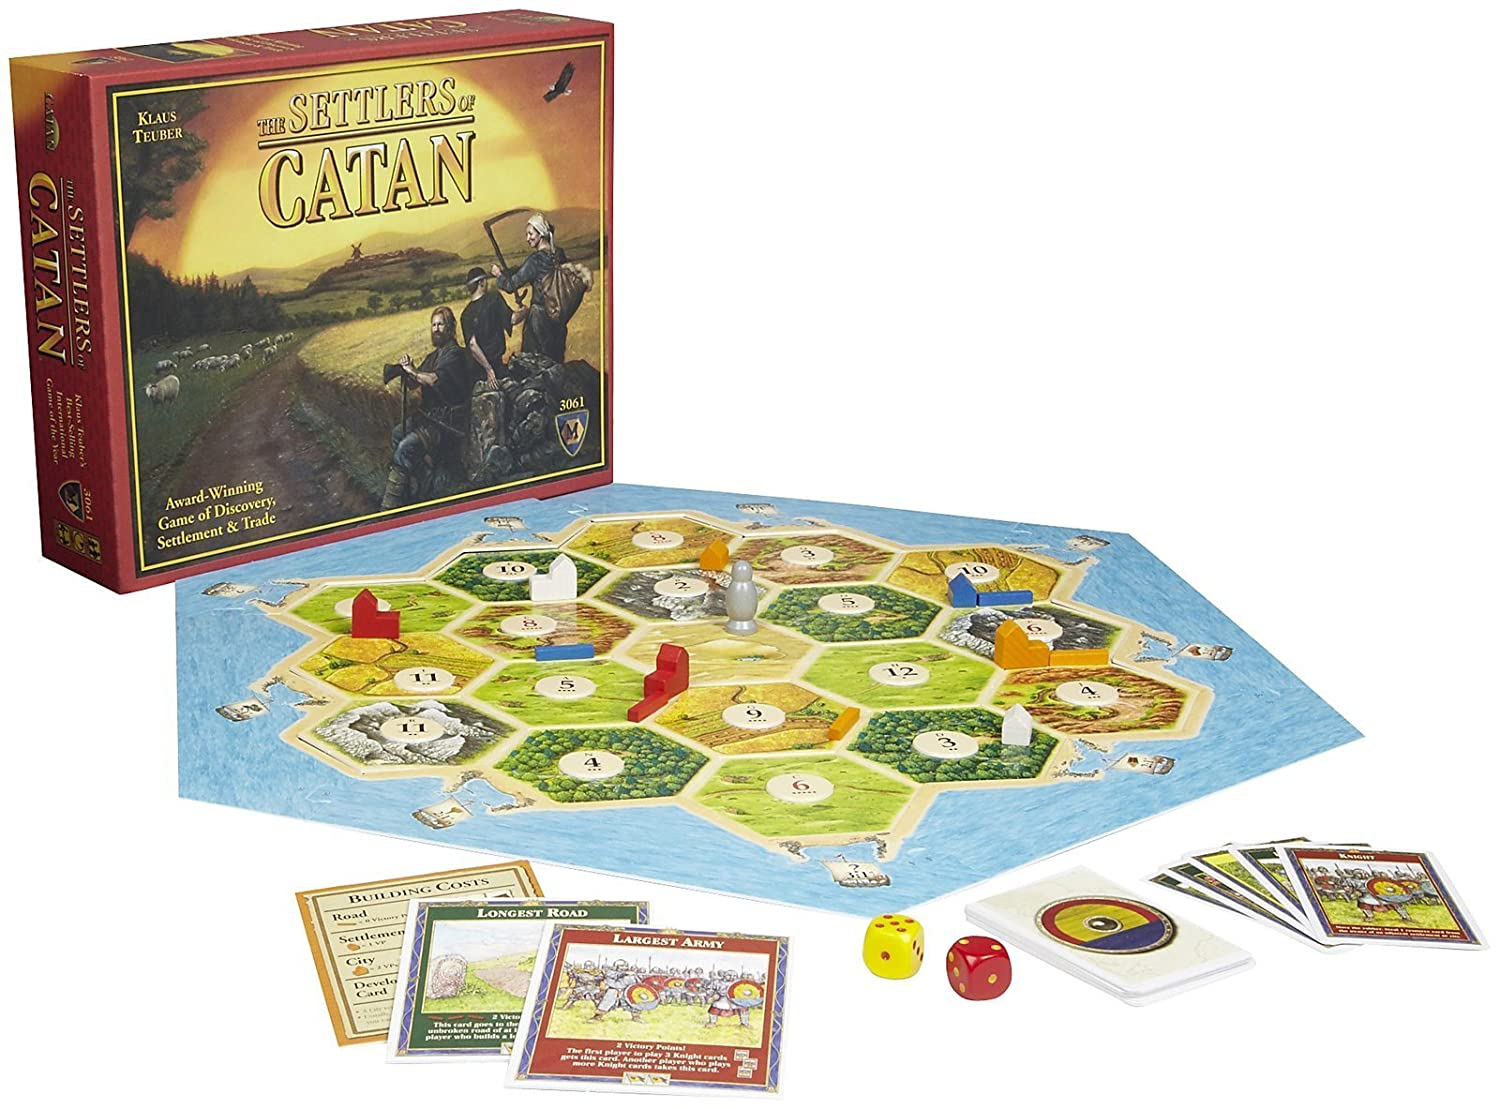 The Settlers of Catan game board